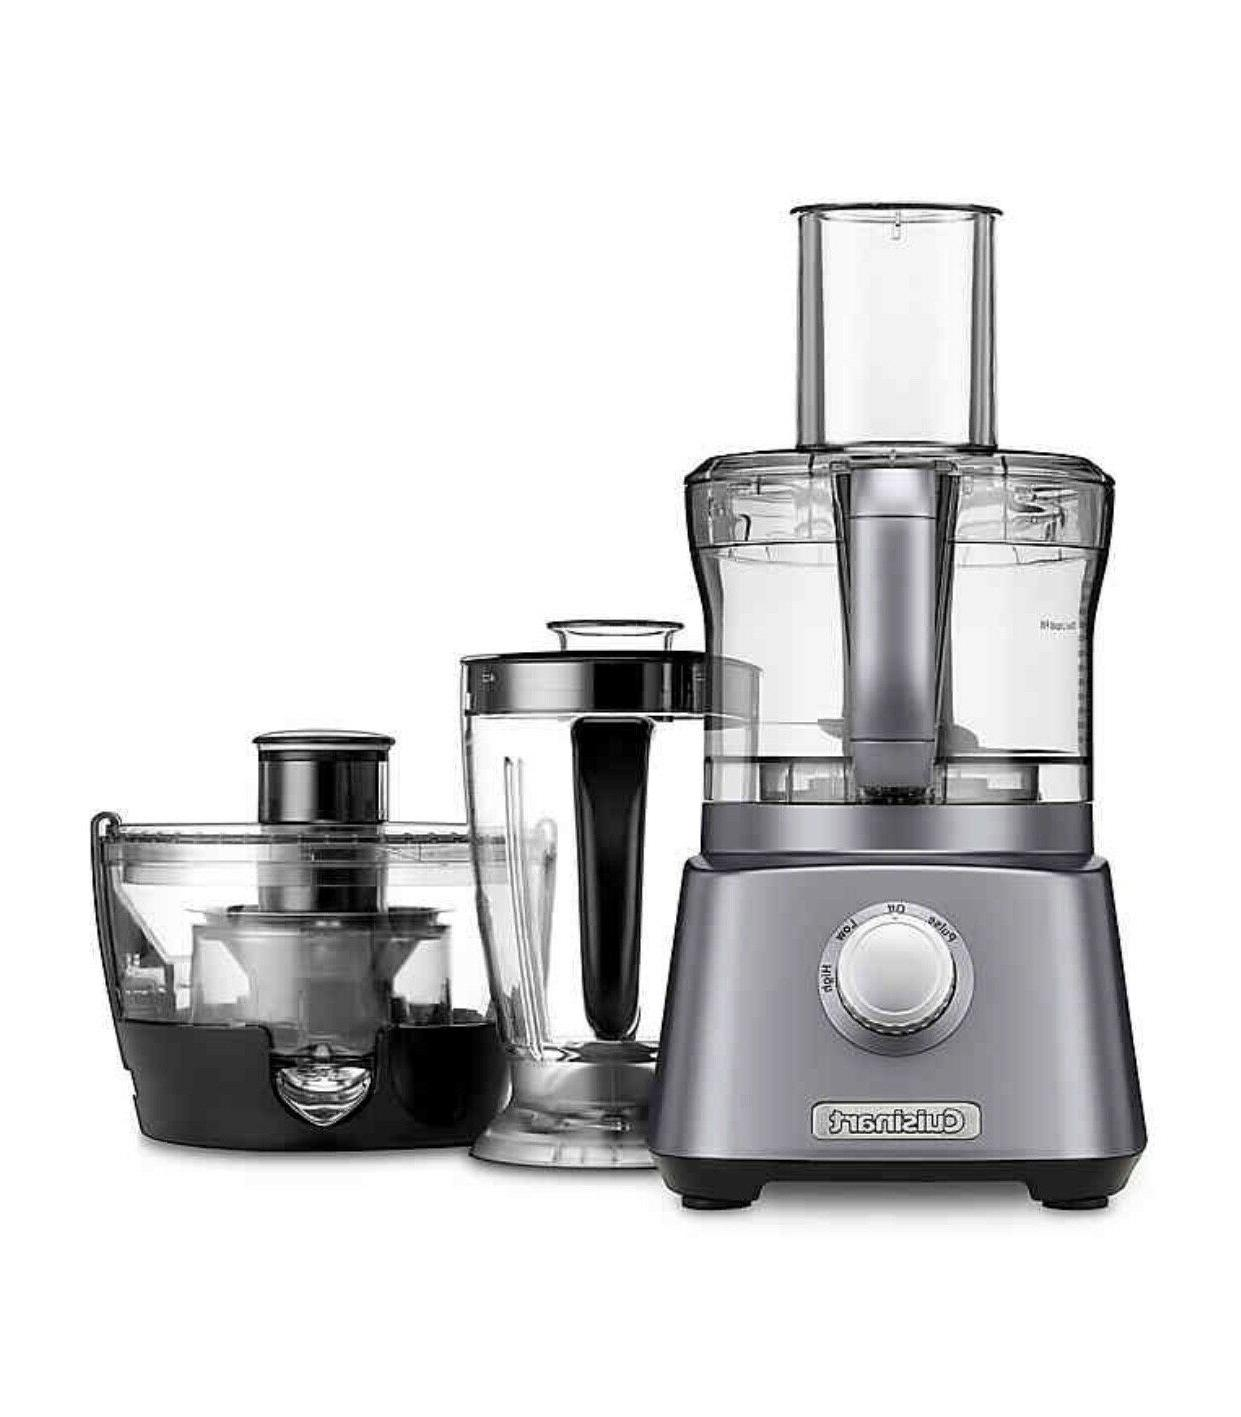 Cuisinart Kitchen Blender, and Processor in Gunmetal